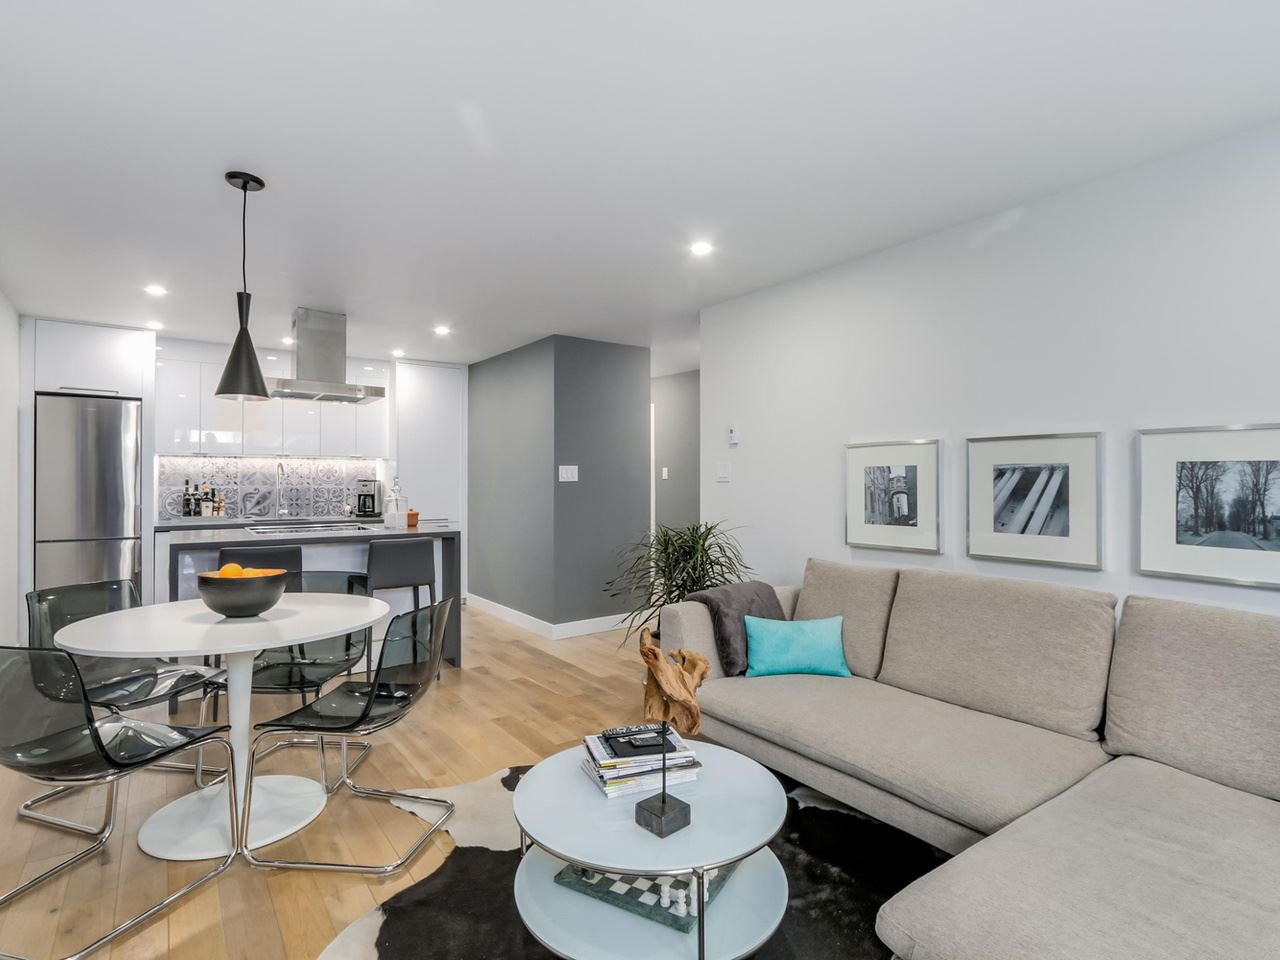 """Main Photo: 106 680 E 5TH Avenue in Vancouver: Mount Pleasant VE Condo for sale in """"McDonald House"""" (Vancouver East)  : MLS®# R2073463"""